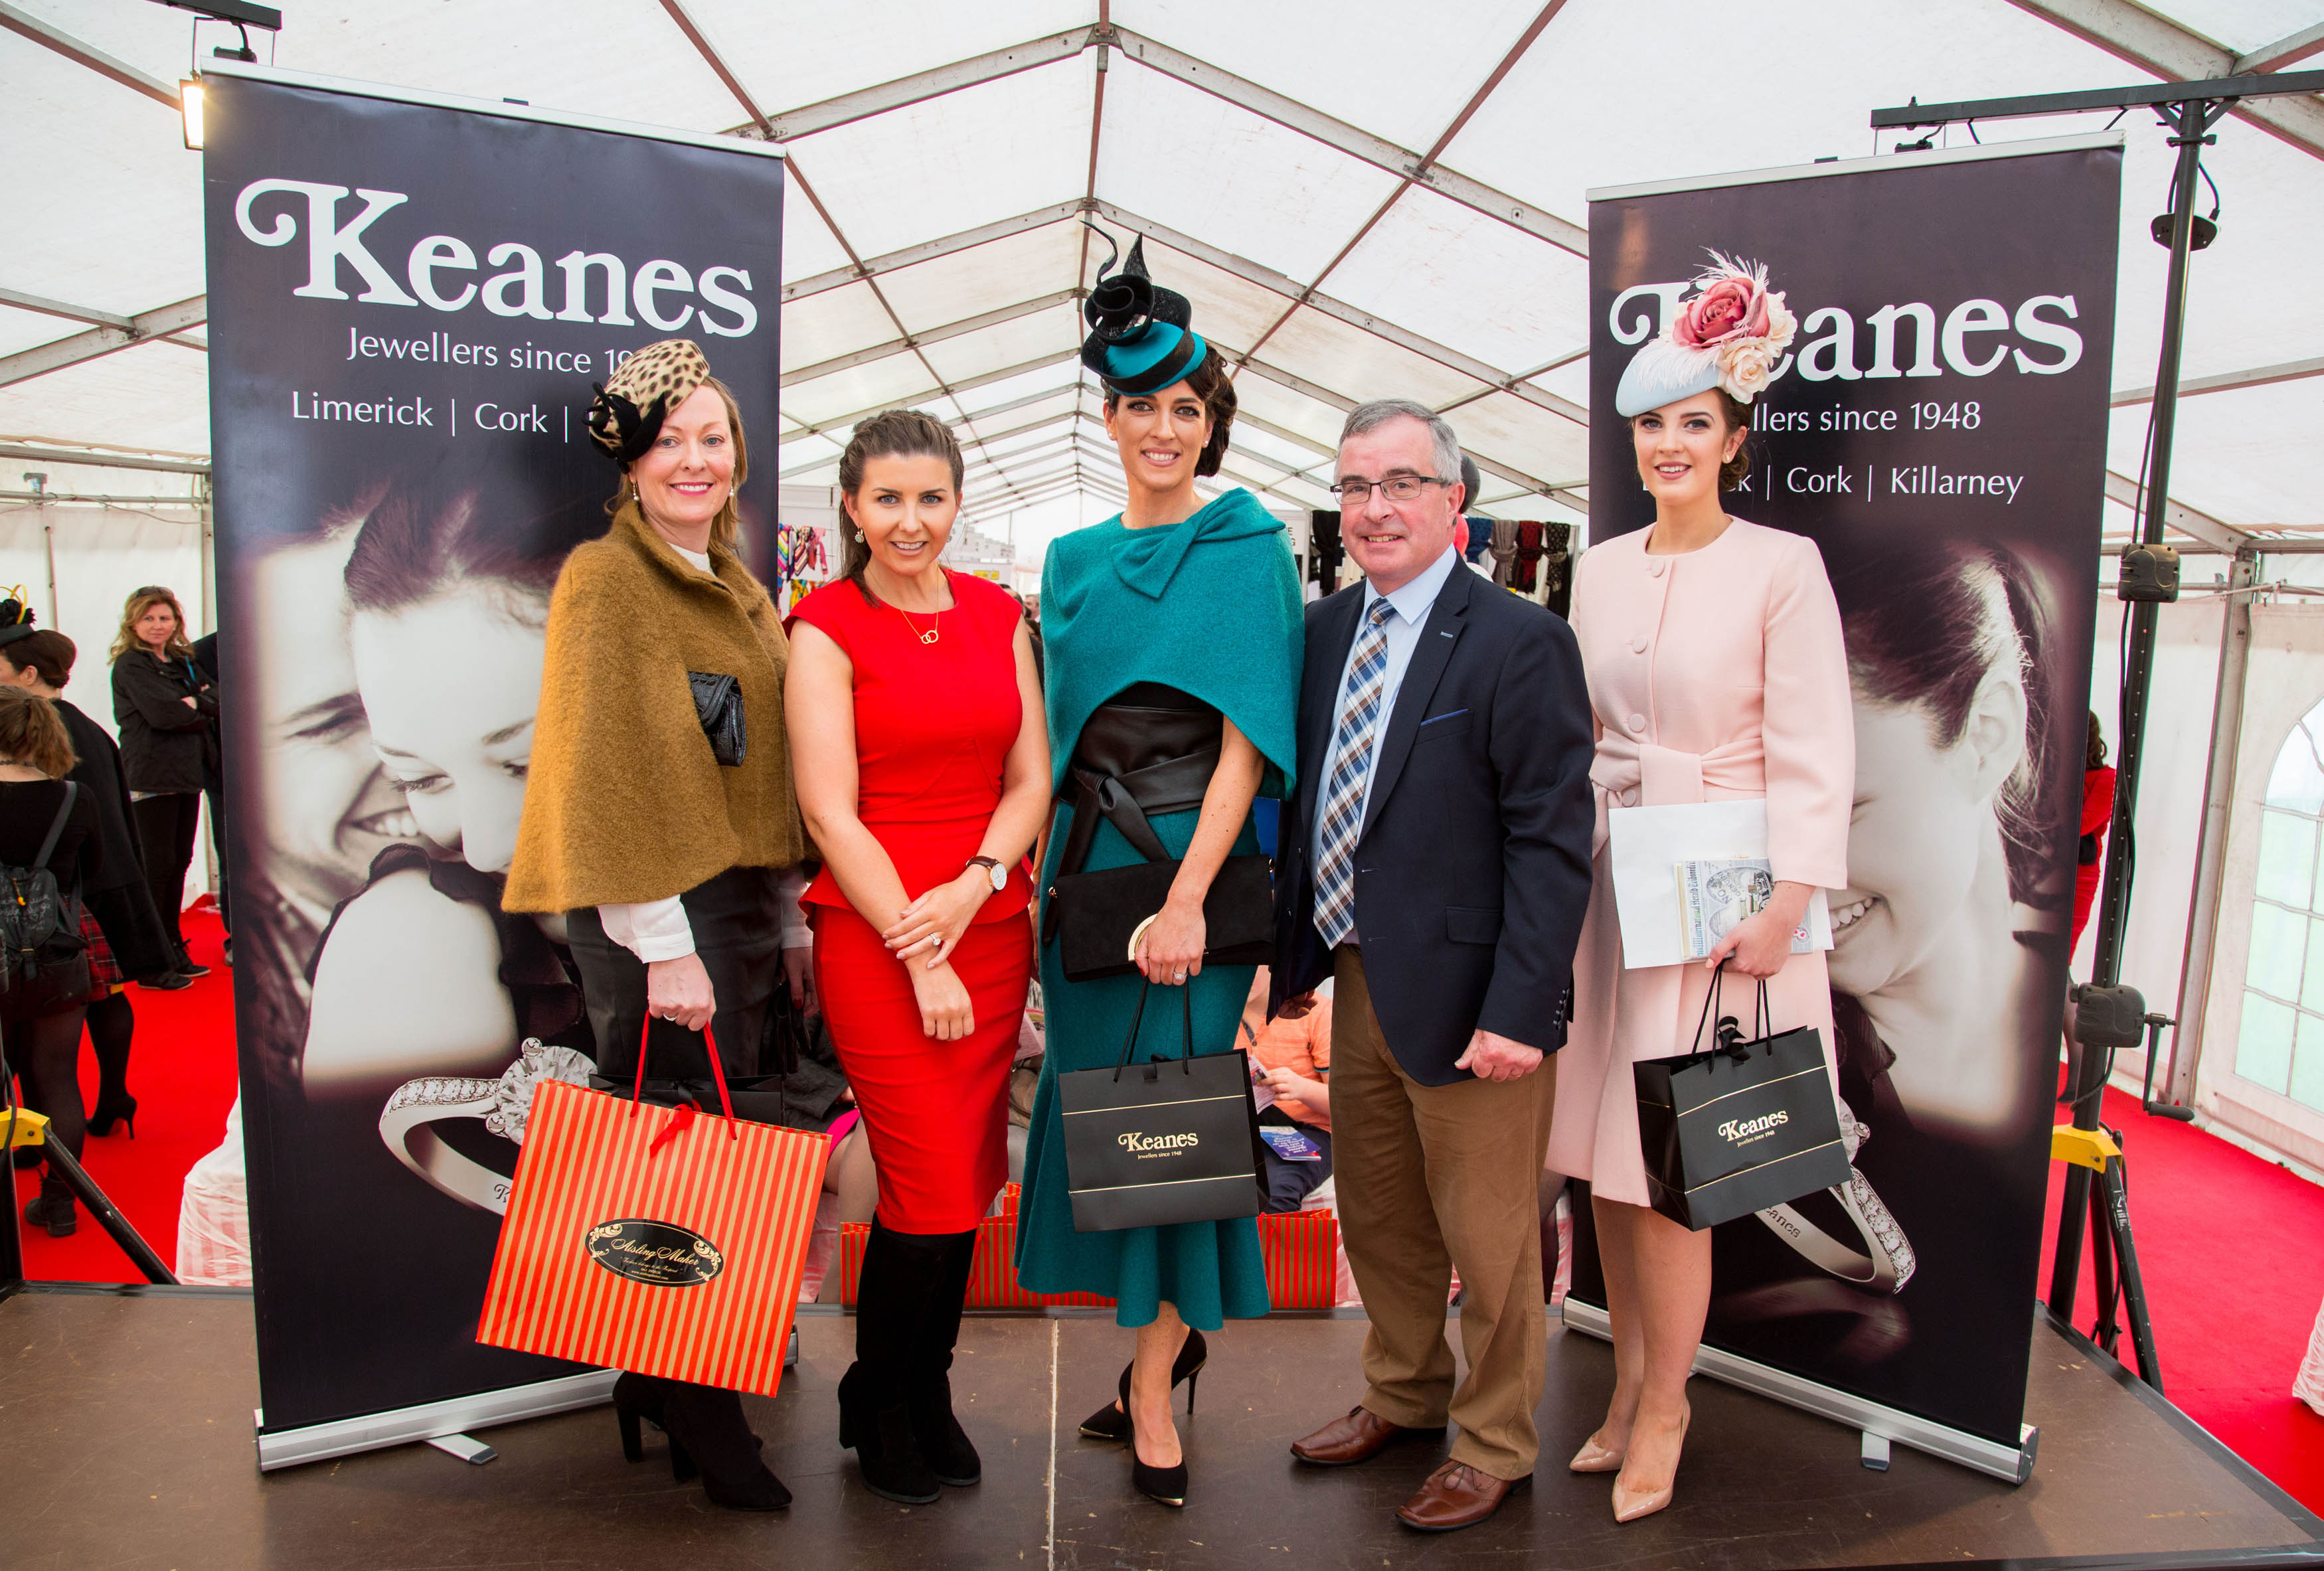 11/10/2015        Lisa McGowan from Tullamore Co Offaly was the winner of the Keanes Jewellers Ladies day at Limerick Racecourse and received a diamond ring to the value of €4,000. A crowd of 5,682 enjoyed a sunny day of national hunt racing to include the Ladbrokes Munster National which was won by  Sadlers Risk trained by Henry De Bromhead under jockey Andrew Lynch.  Pictured  are left to right, 2nd place, Angela Shire, 26 Crestwood Kilteragh, Dooradoyle, Limerick, Jessamine O'Neill, Keanes Jewellers, Lisa McGowan, Tullarmore Co. Offaly winner of Keanes Jewellers Ladies day, Aidan Lyddy, Keanes Jewellers, 3rd place Alex Butler, Middleton, Co. Cork. Picture: Alan Place/Fusionshooters.